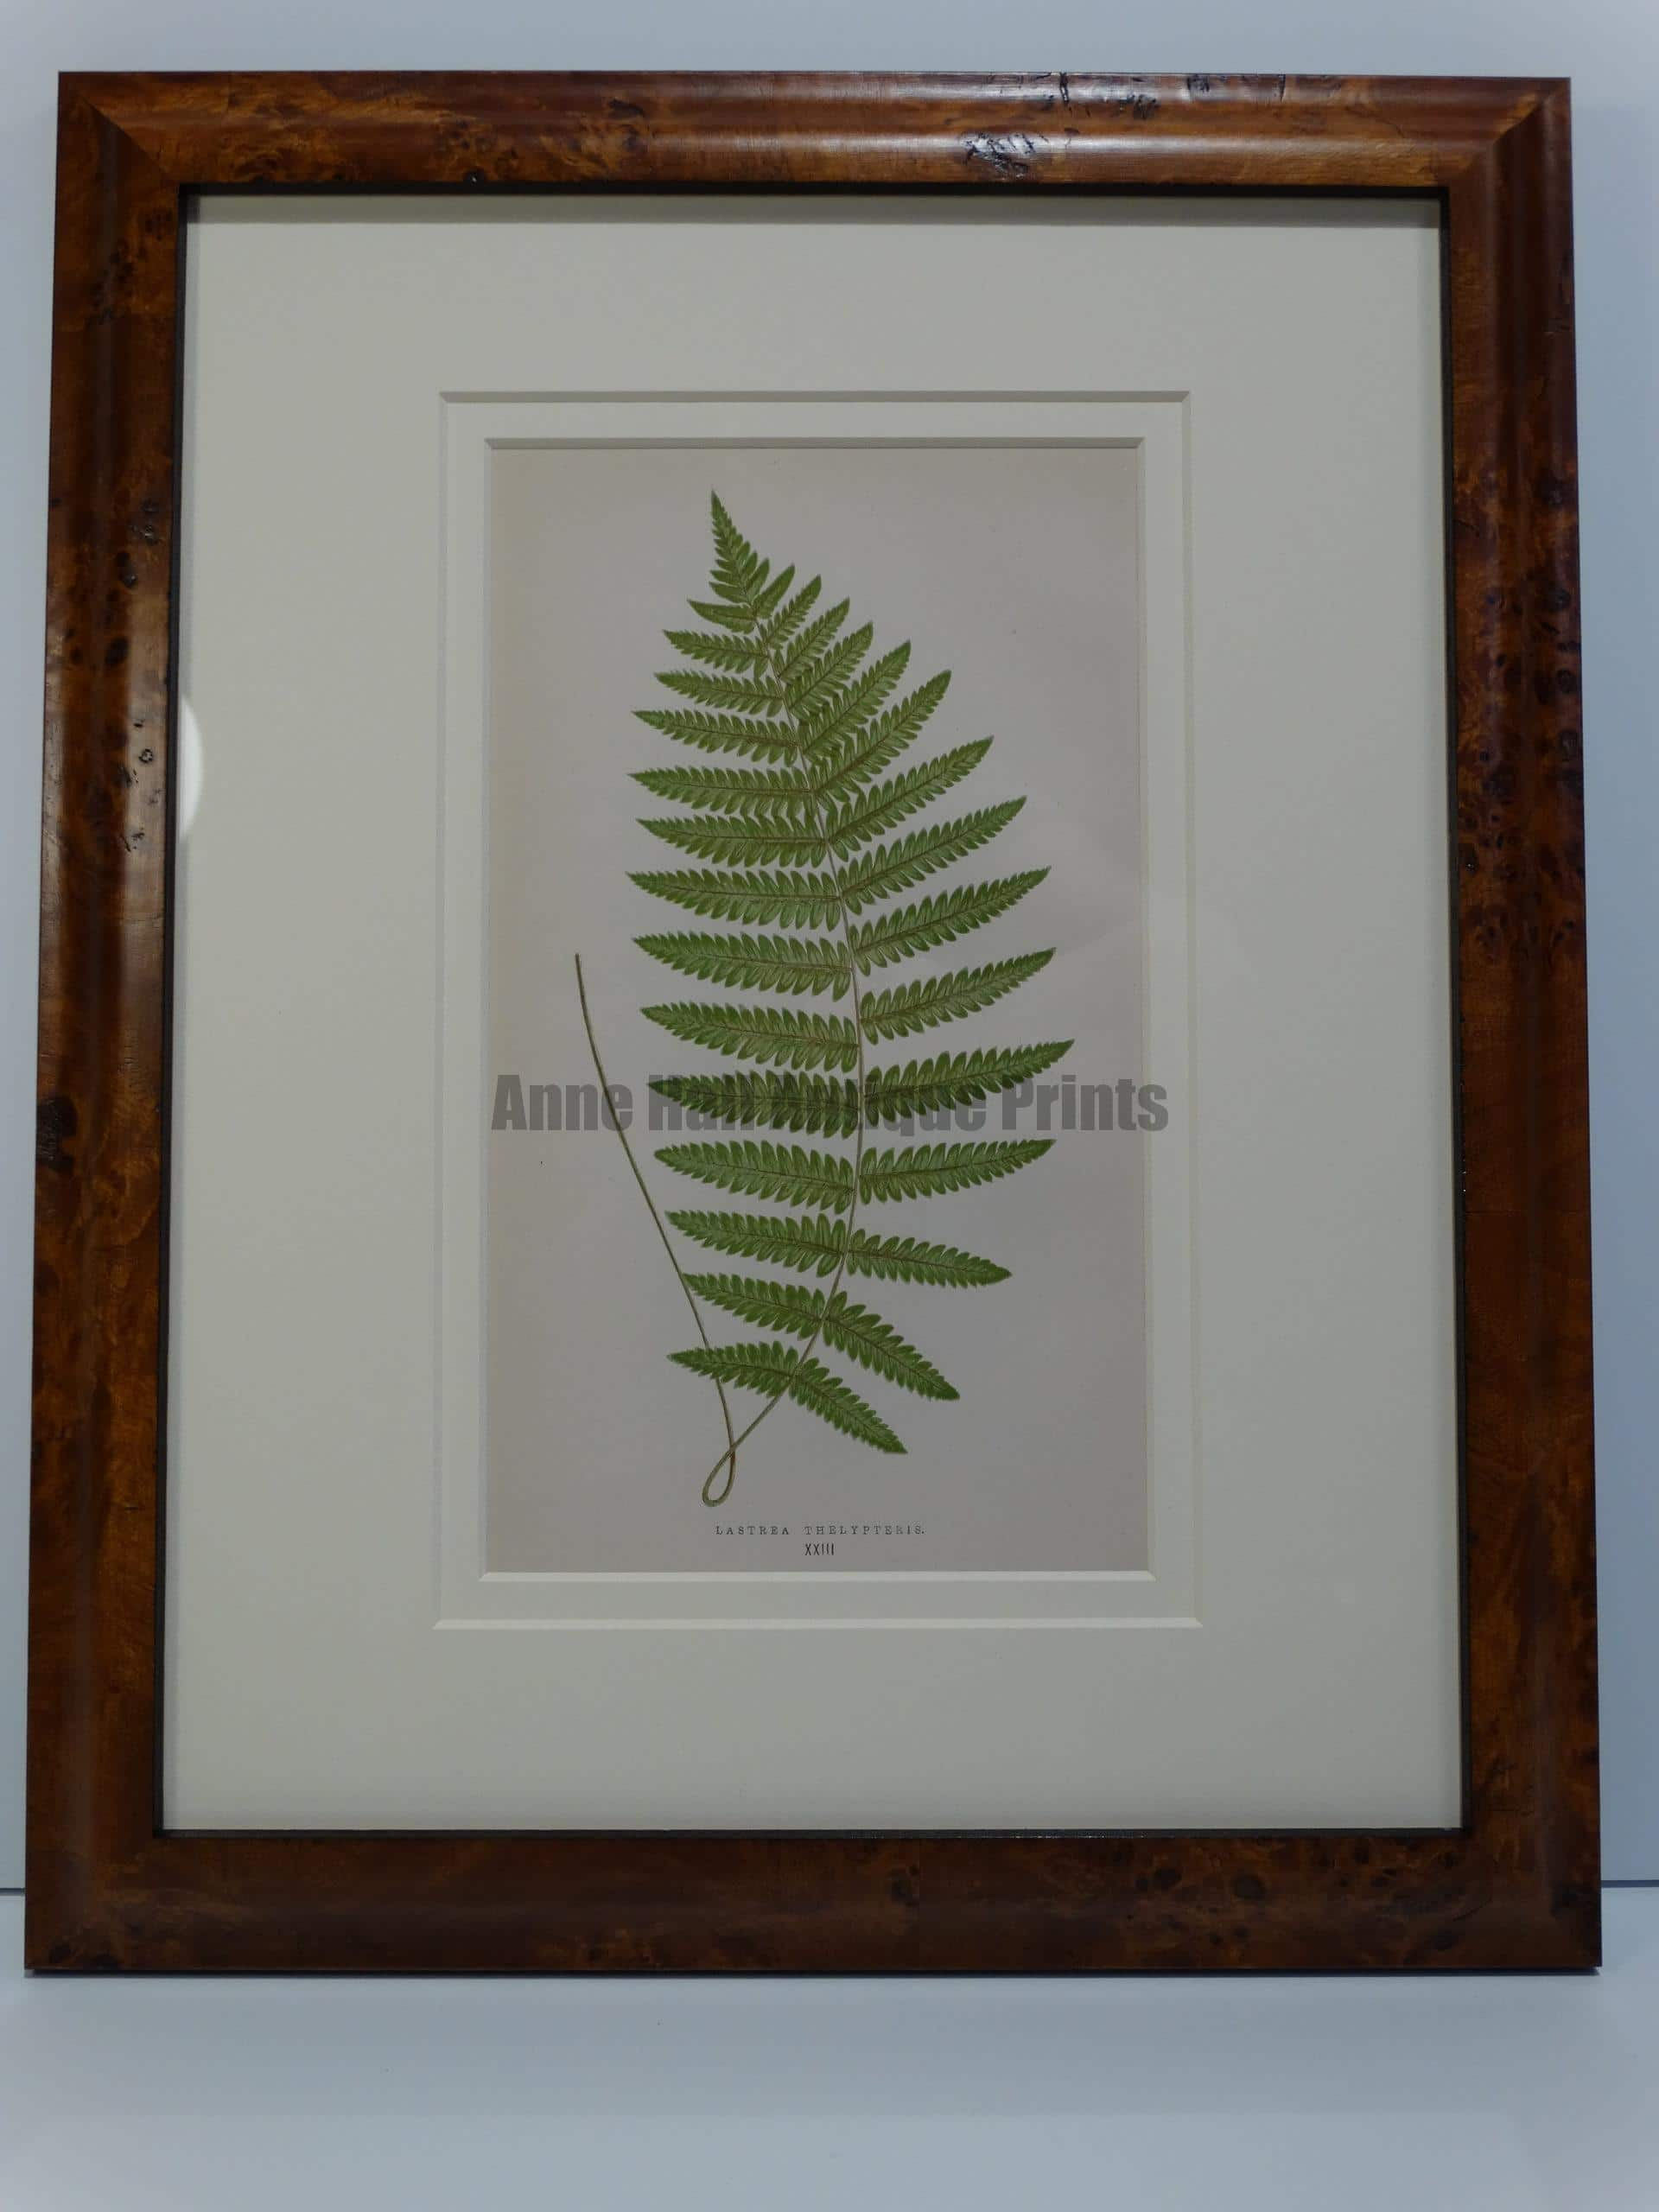 stunning antique lithograph of fern